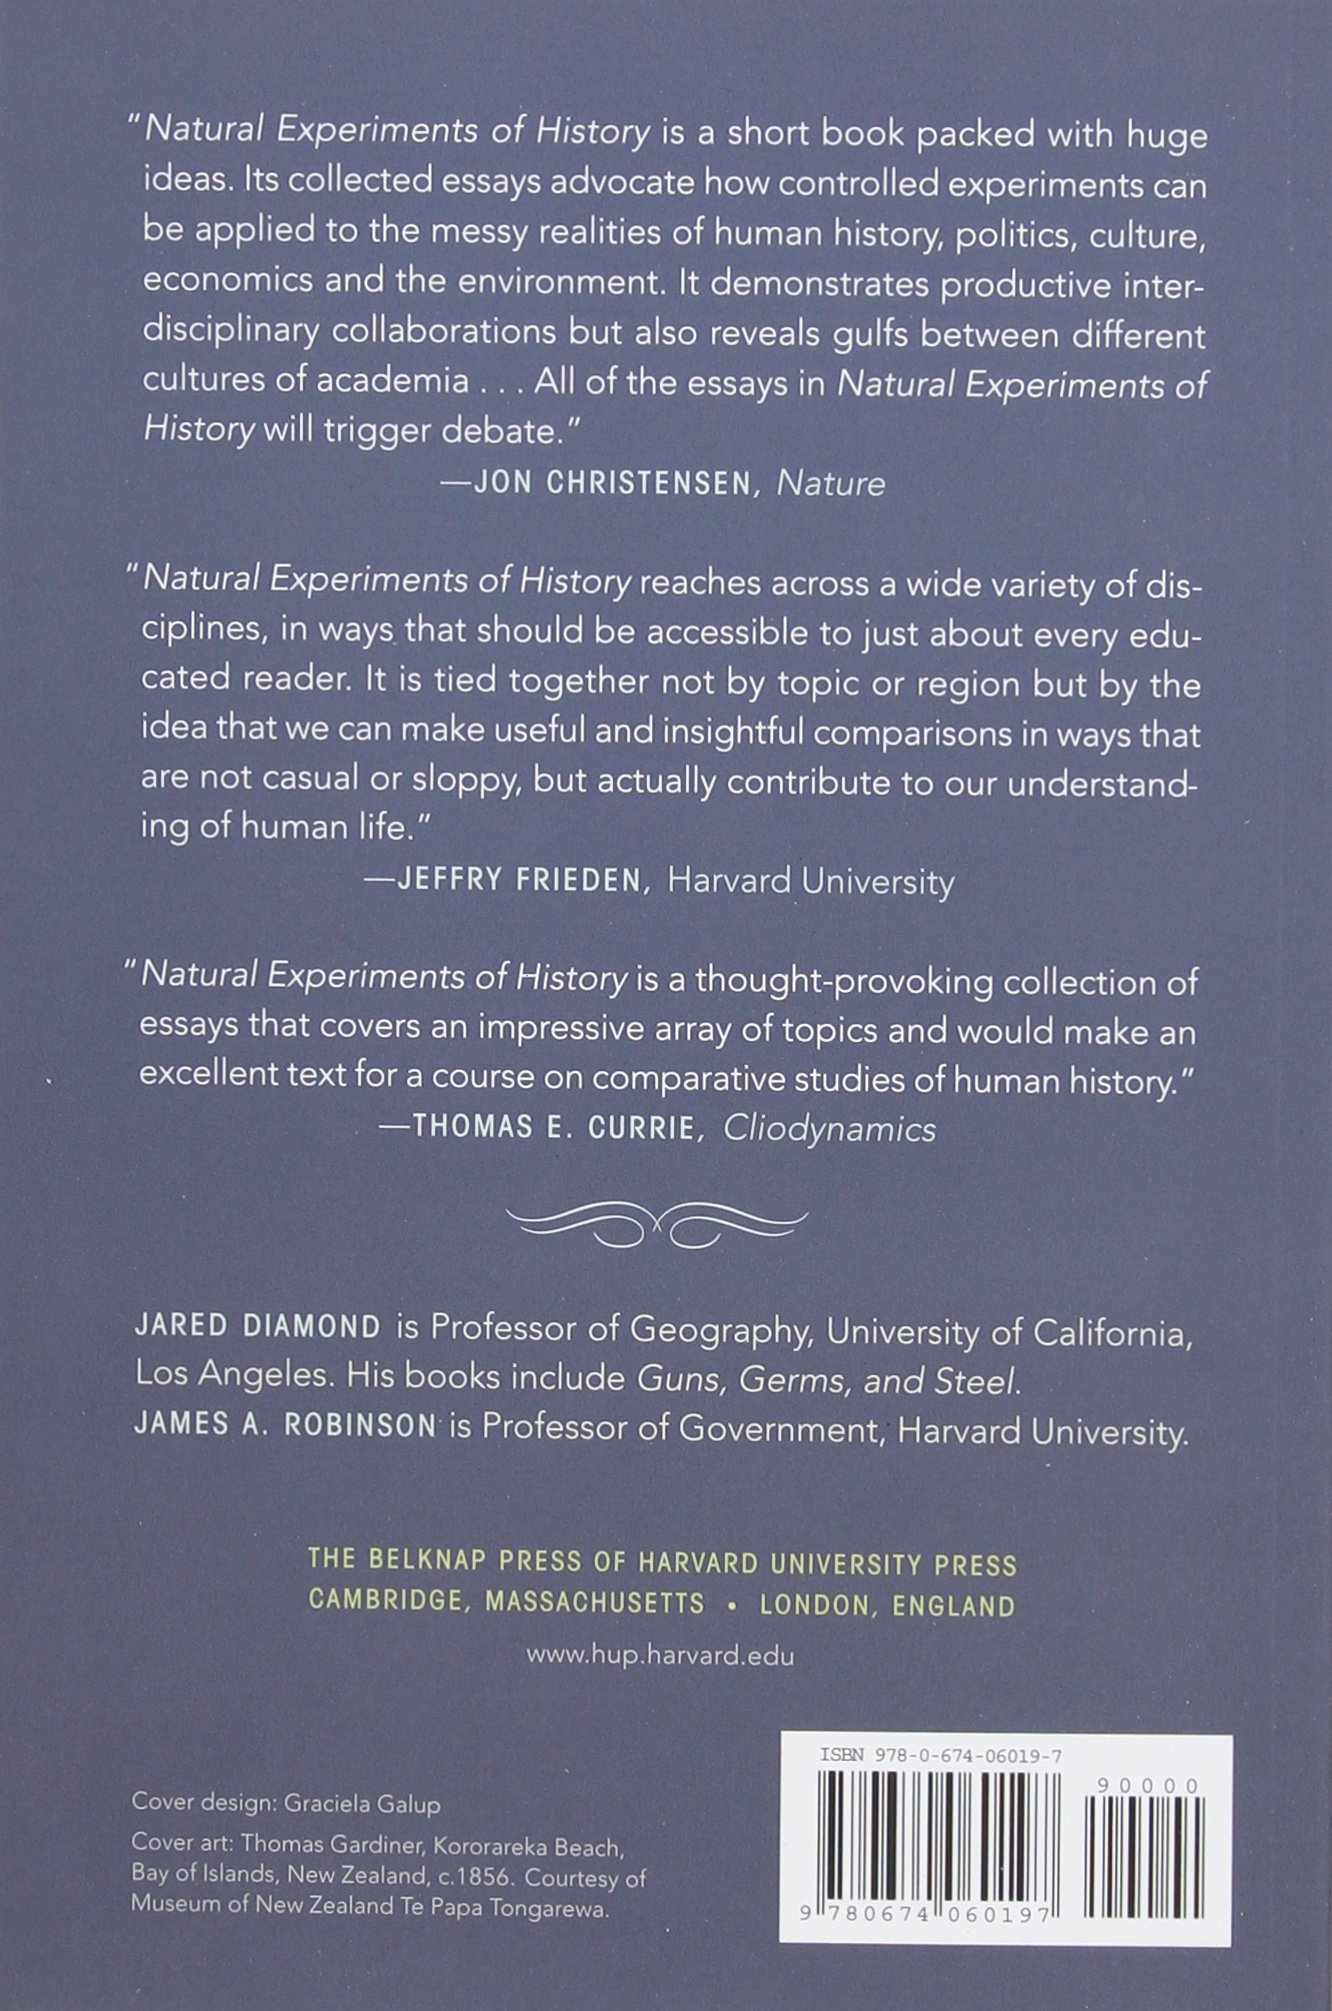 natural experiments of history jared diamond james a robinson natural experiments of history jared diamond james a robinson 9780674060197 com books